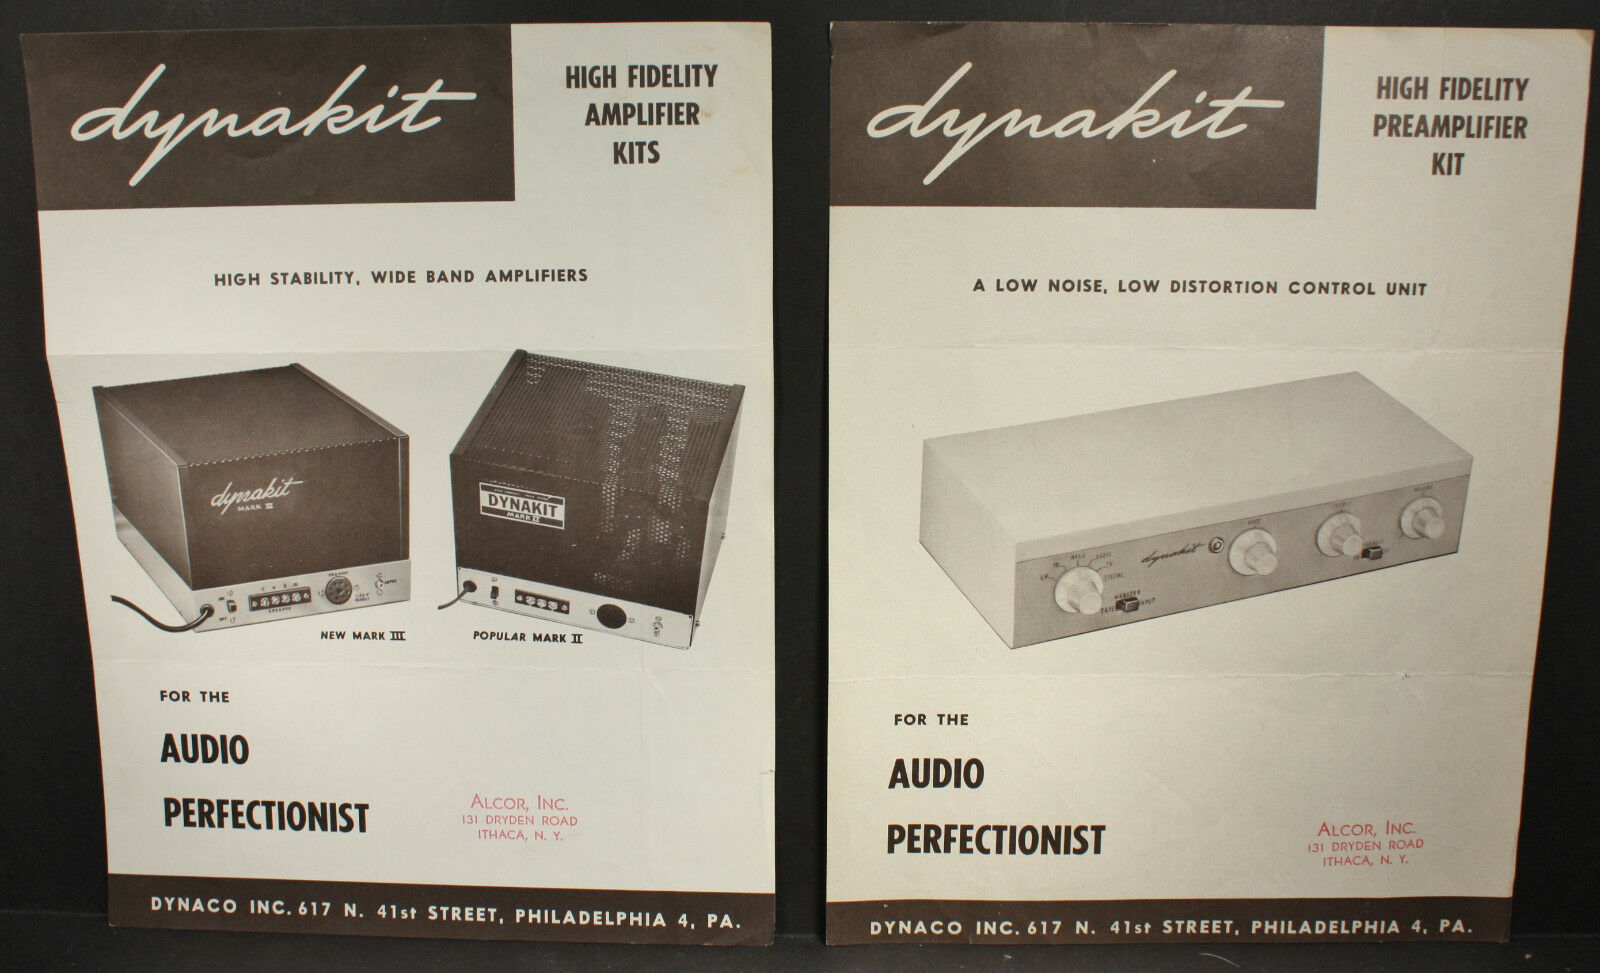 Dynakit High Fi Mark Ii Iii Amplifier Preamp Kit Brochure Band 2 Preamplifier 1 Of 5only Available